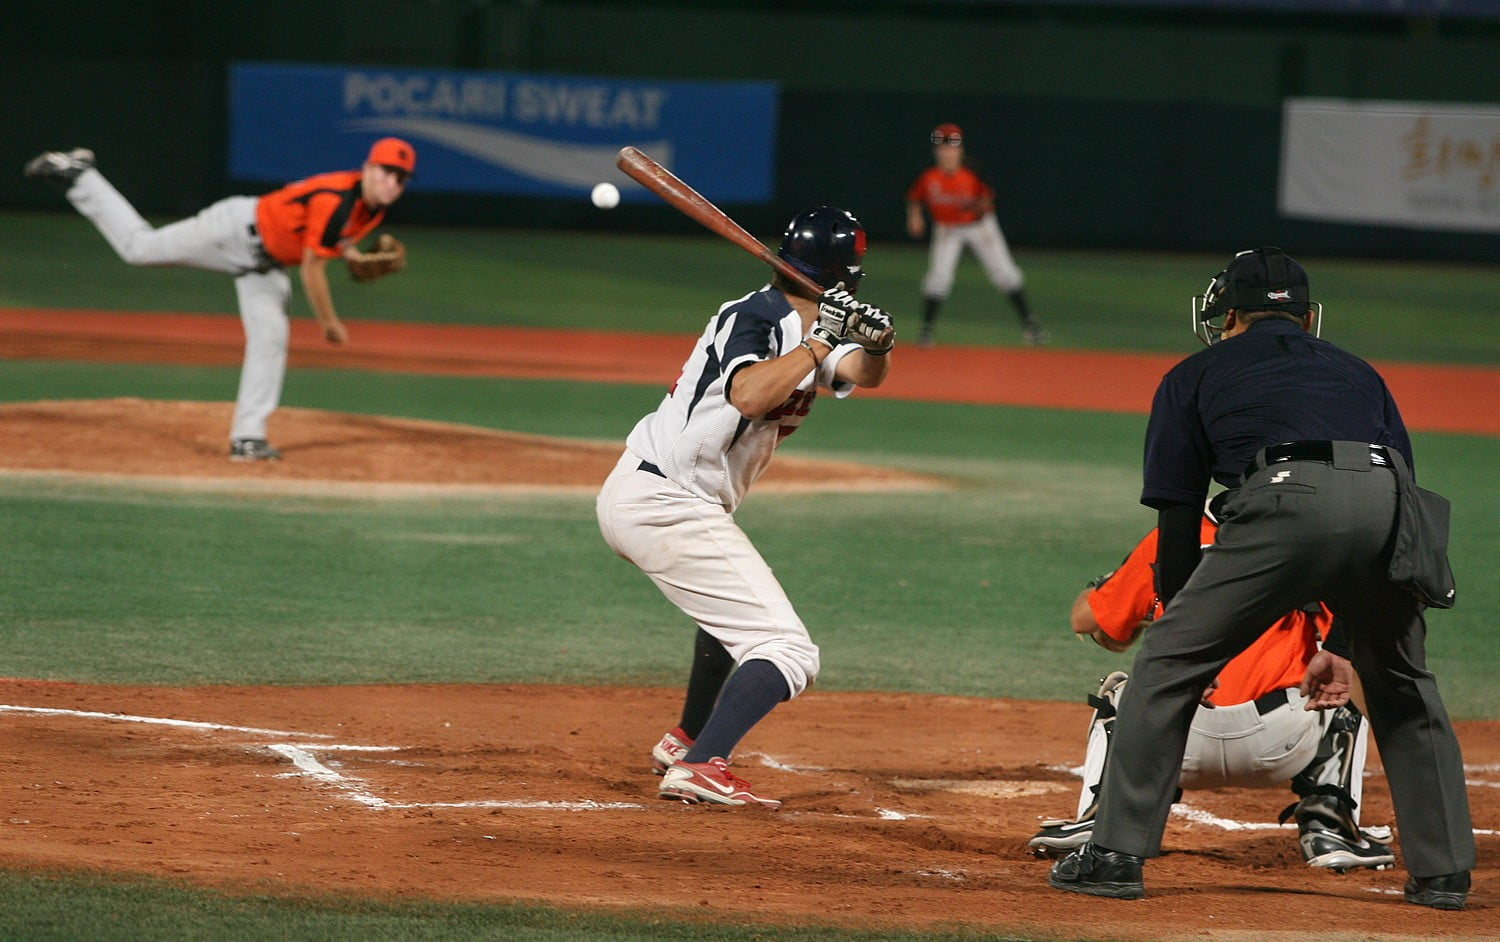 the competition conflict style of a baseball Conflicts between individuals is a constant part of the human experience the outcome of the conflict, assuming the actions in the conflict are rational, can usually be traced to two factors: the value of the relationship to the individuals and the value of the topic to each individual in the conflict.